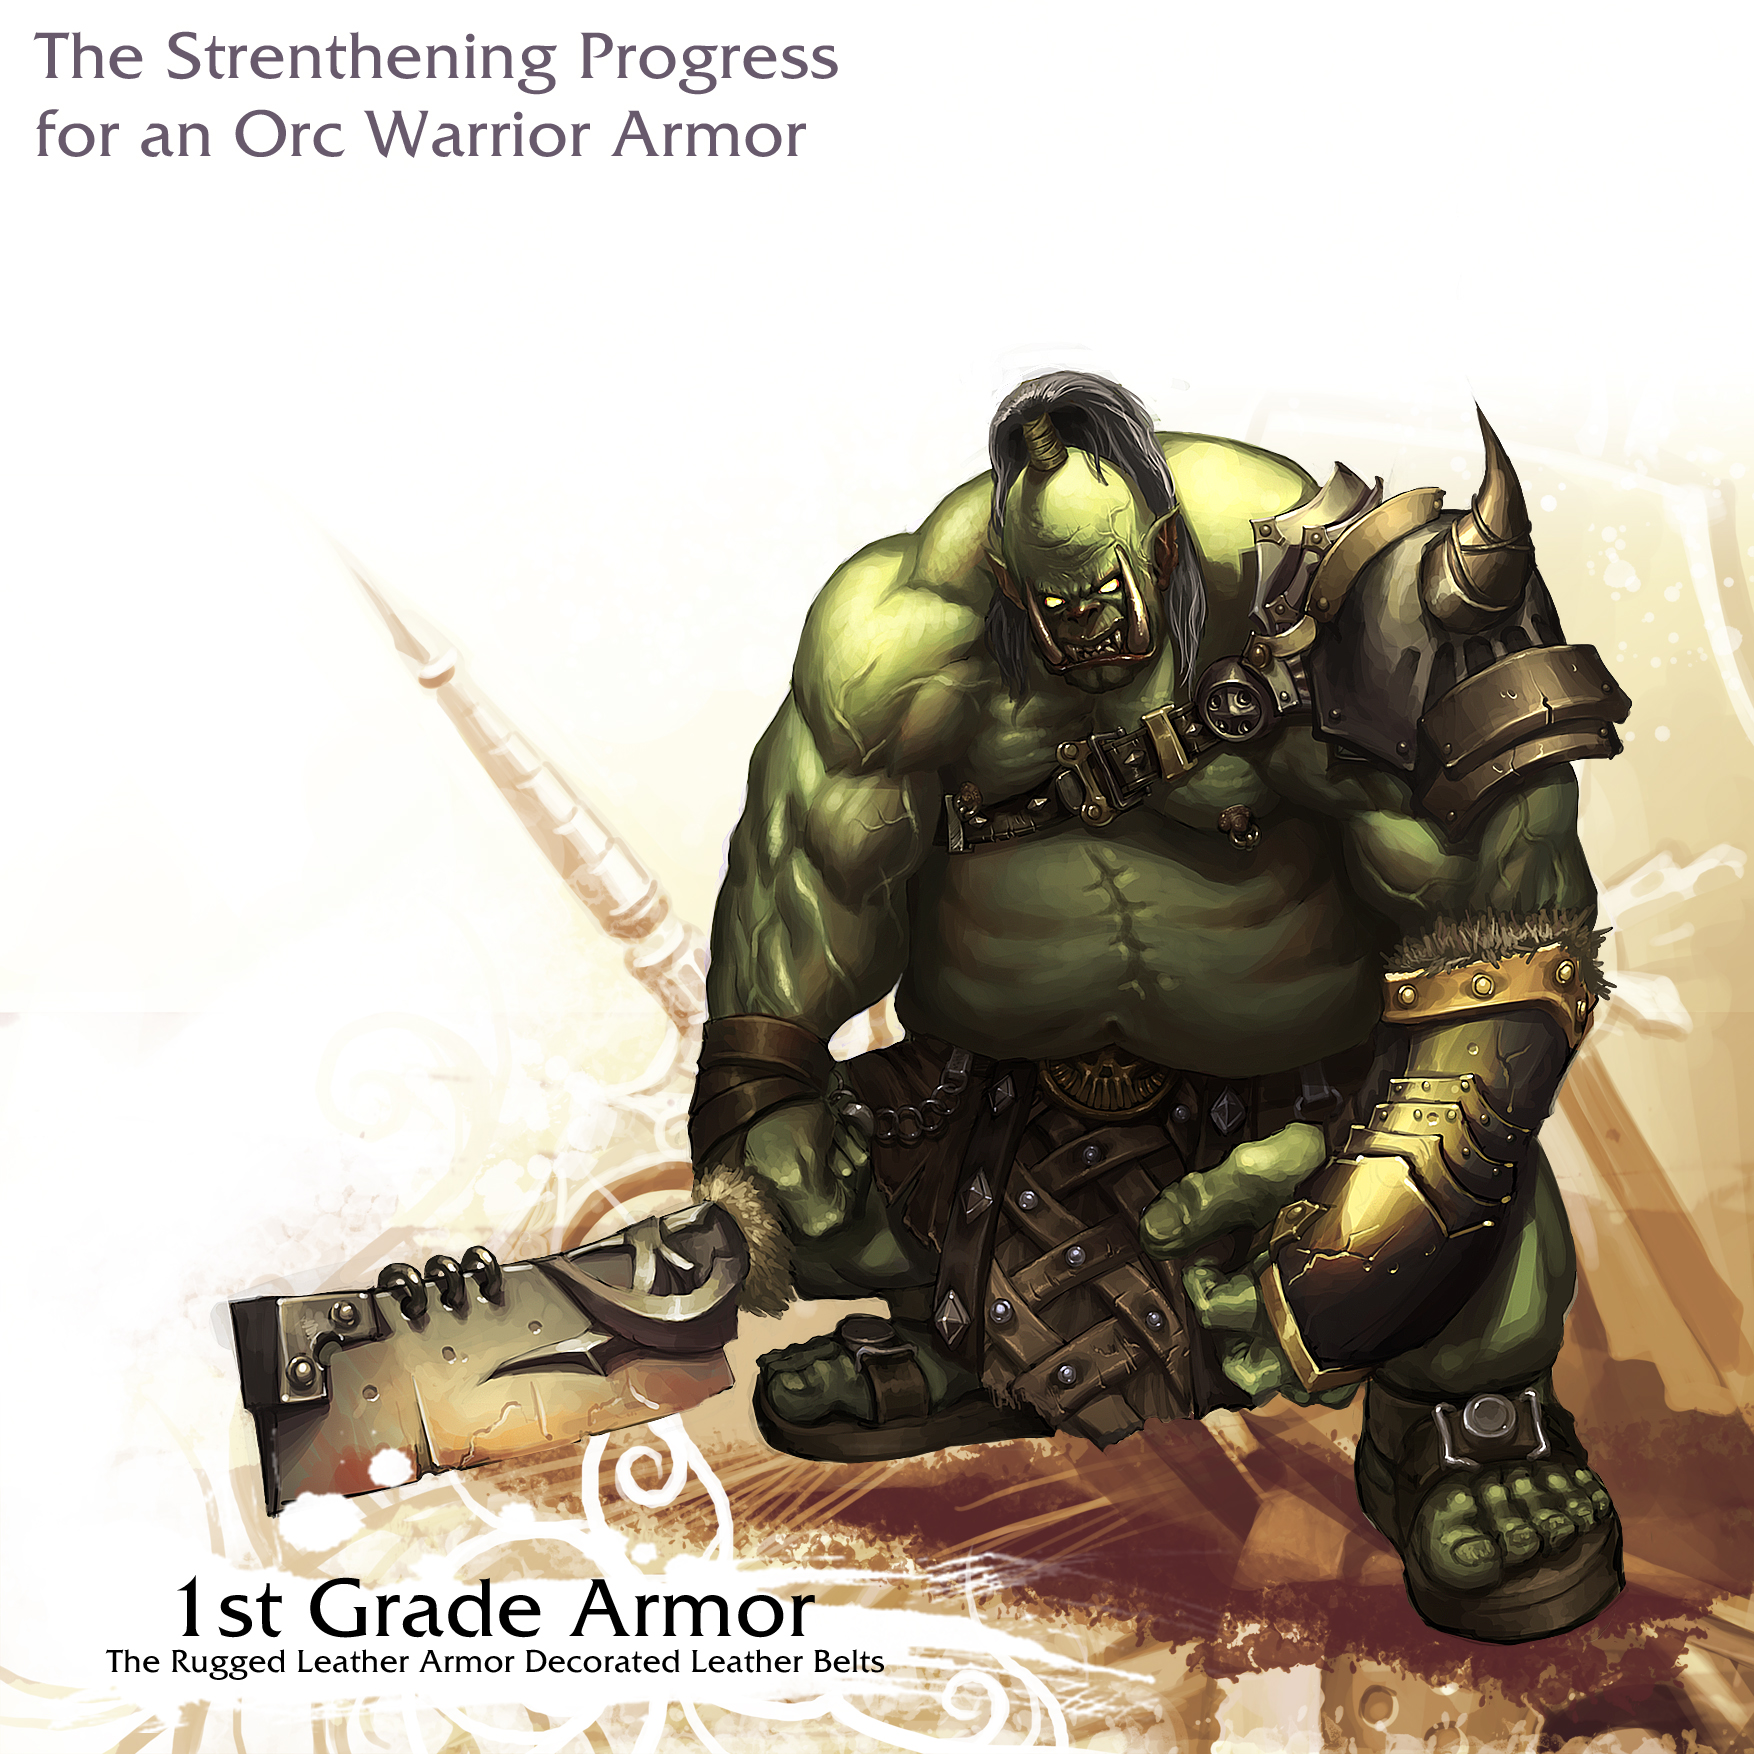 Orc Warrior - 1st Grade